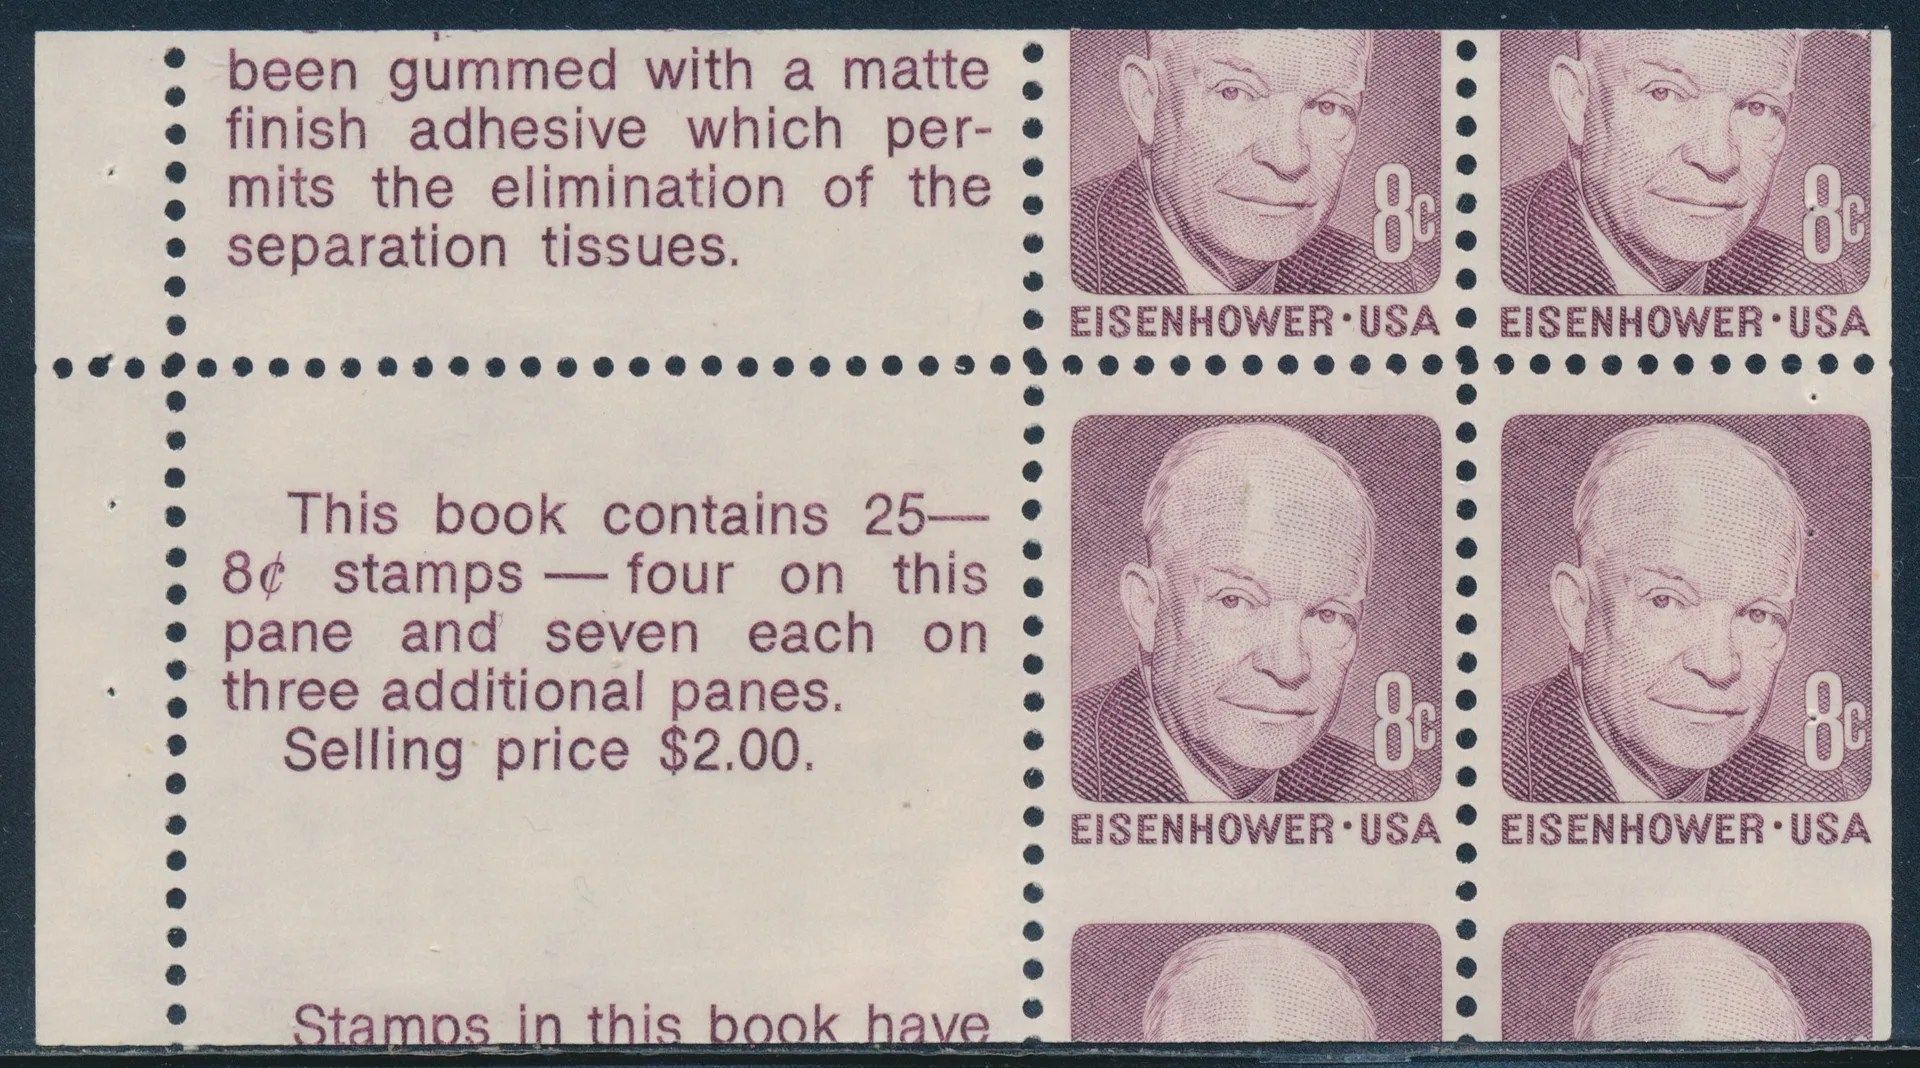 Eisenhower Stamp Errors